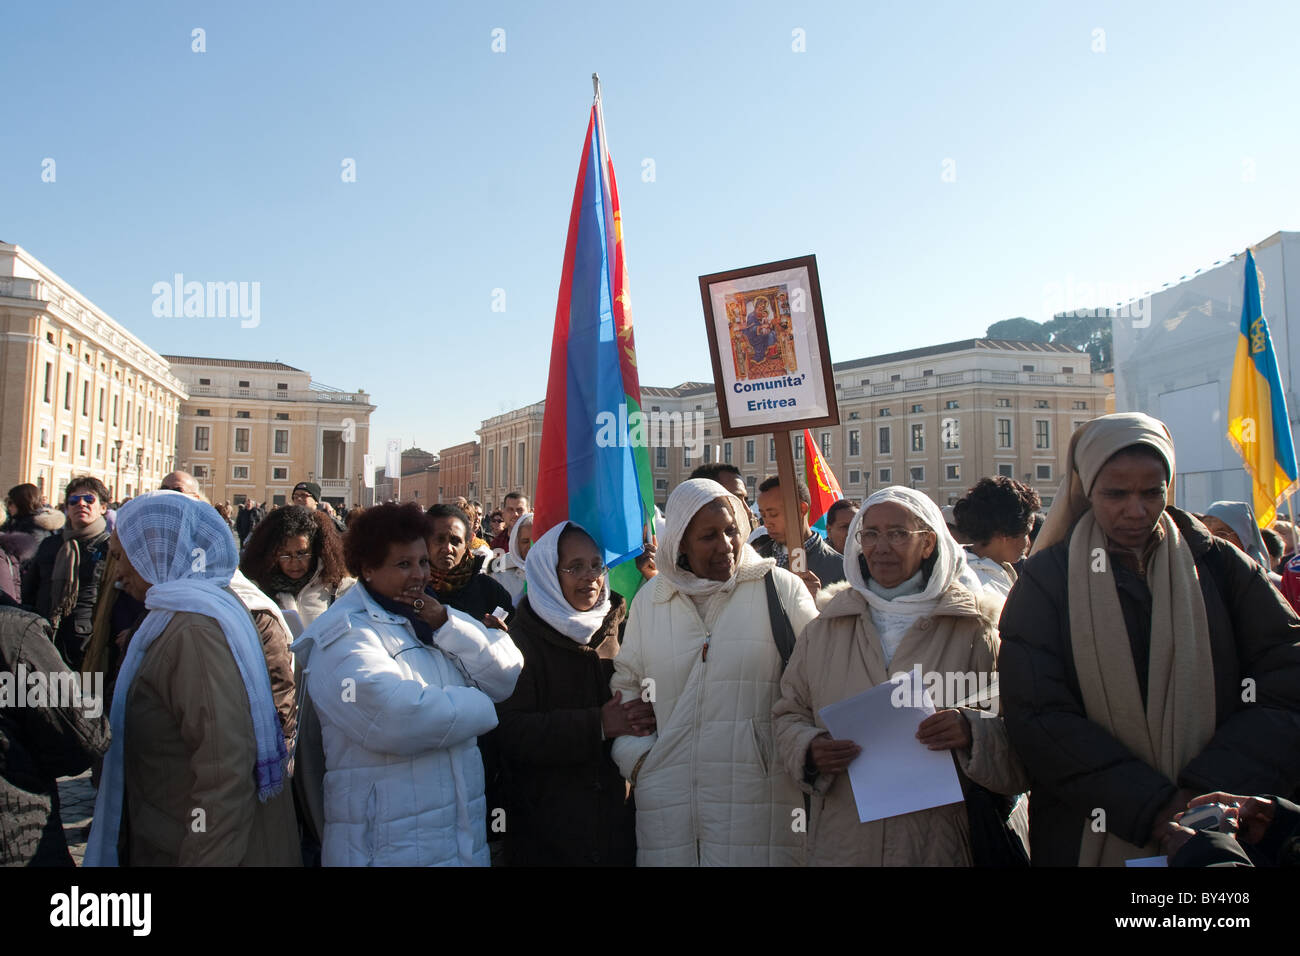 crowd people 'Migrant day' celebration Vatican St Peter saint peter's square eritrea community women - Stock Image